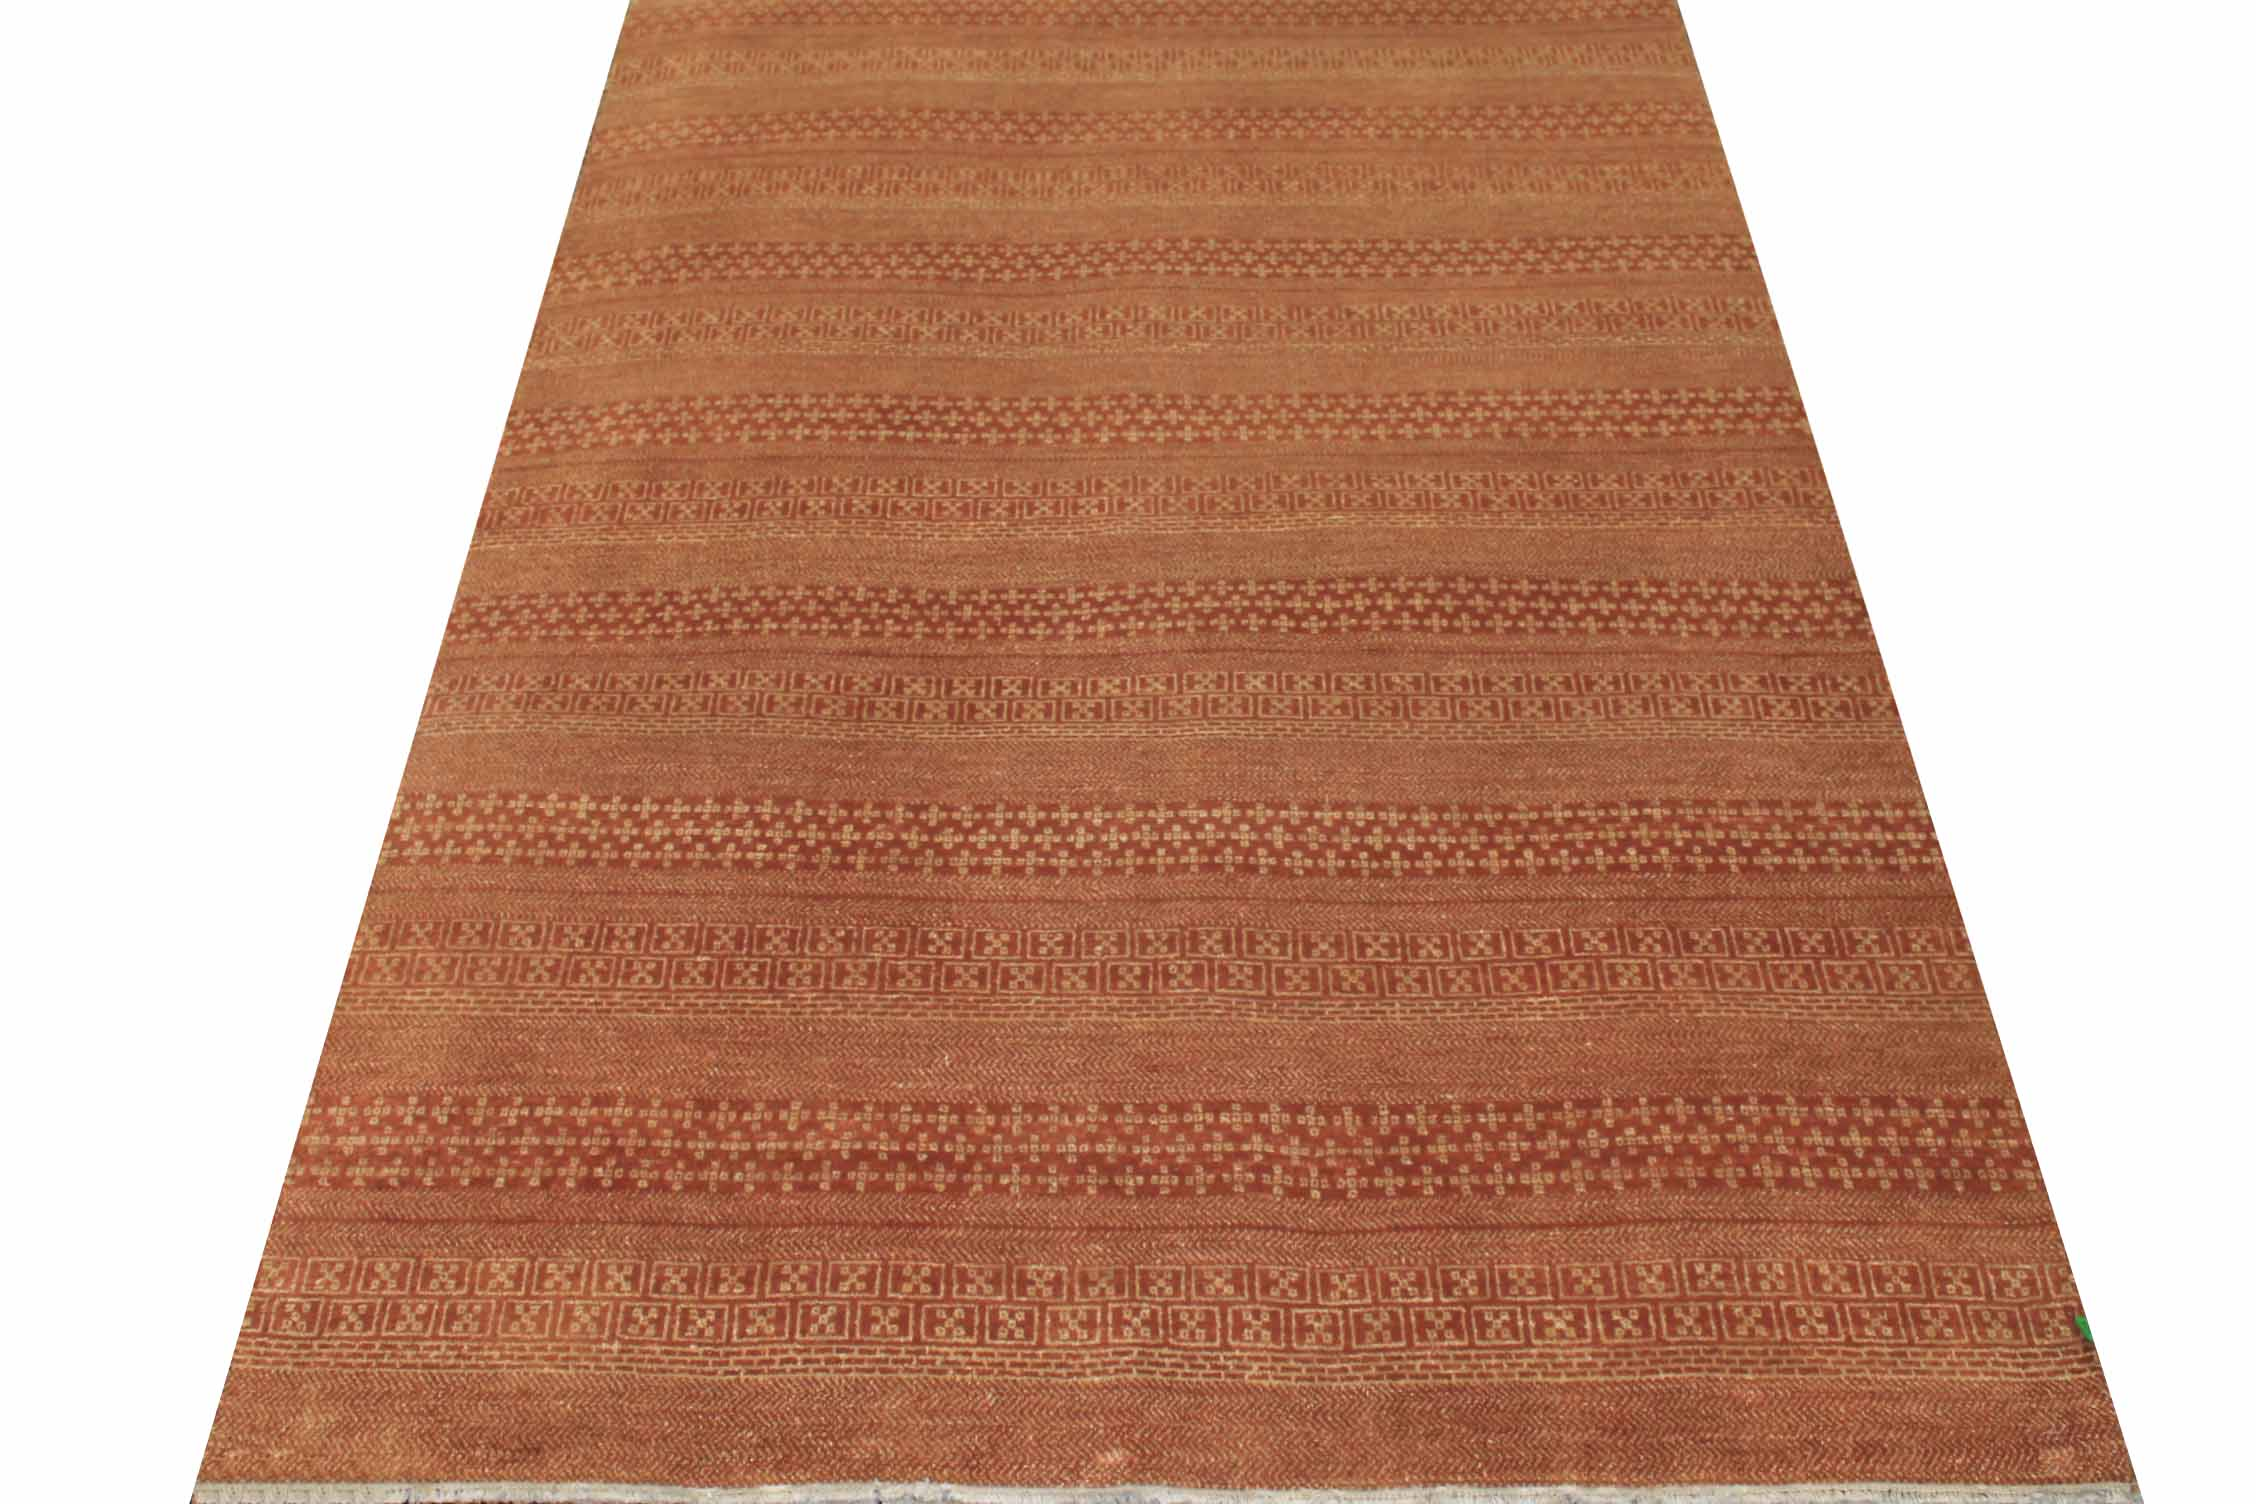 6x9 Contemporary Hand Knotted Wool Area Rug - MR16233